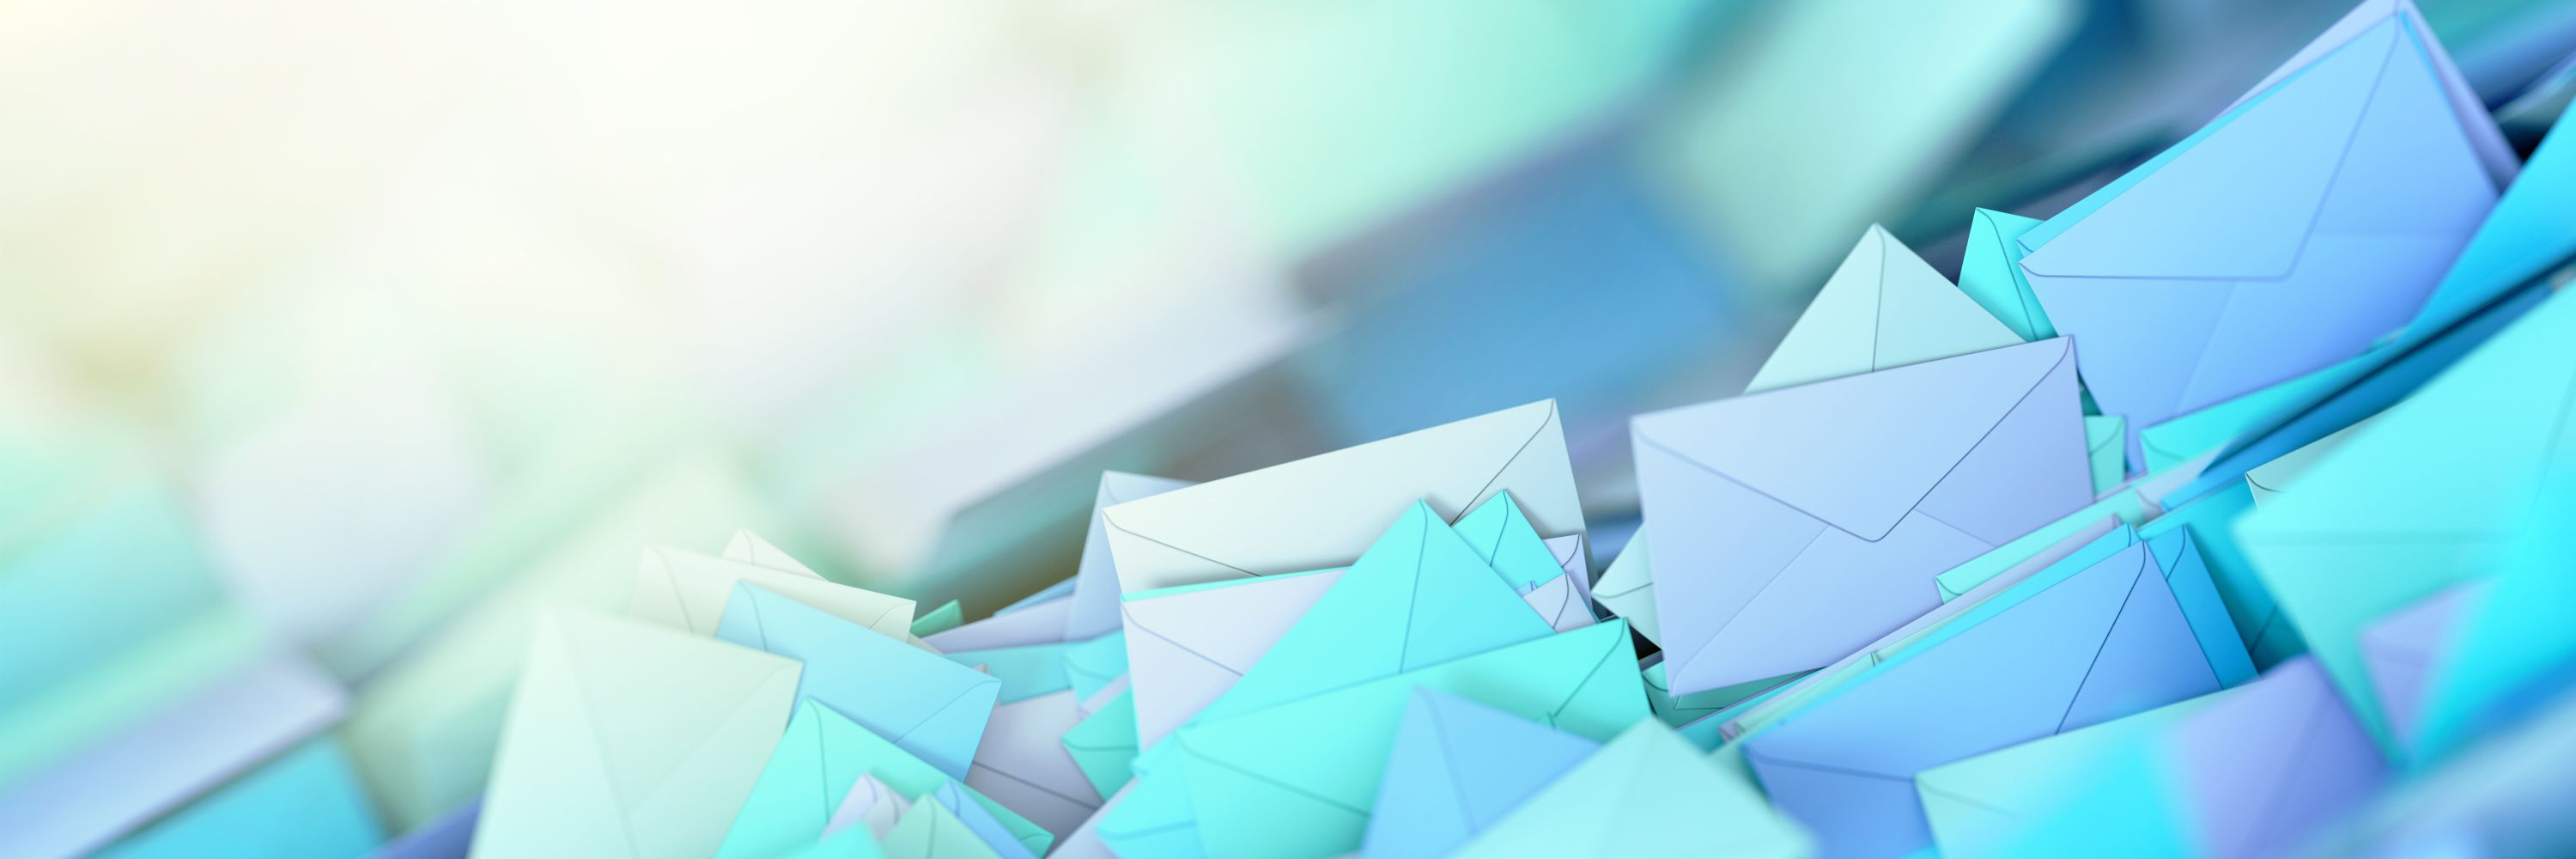 How to Pull a Mailer Database from Property Tax Records Mailing Lists for Realtors - Agent Operations Real Estate Marketing